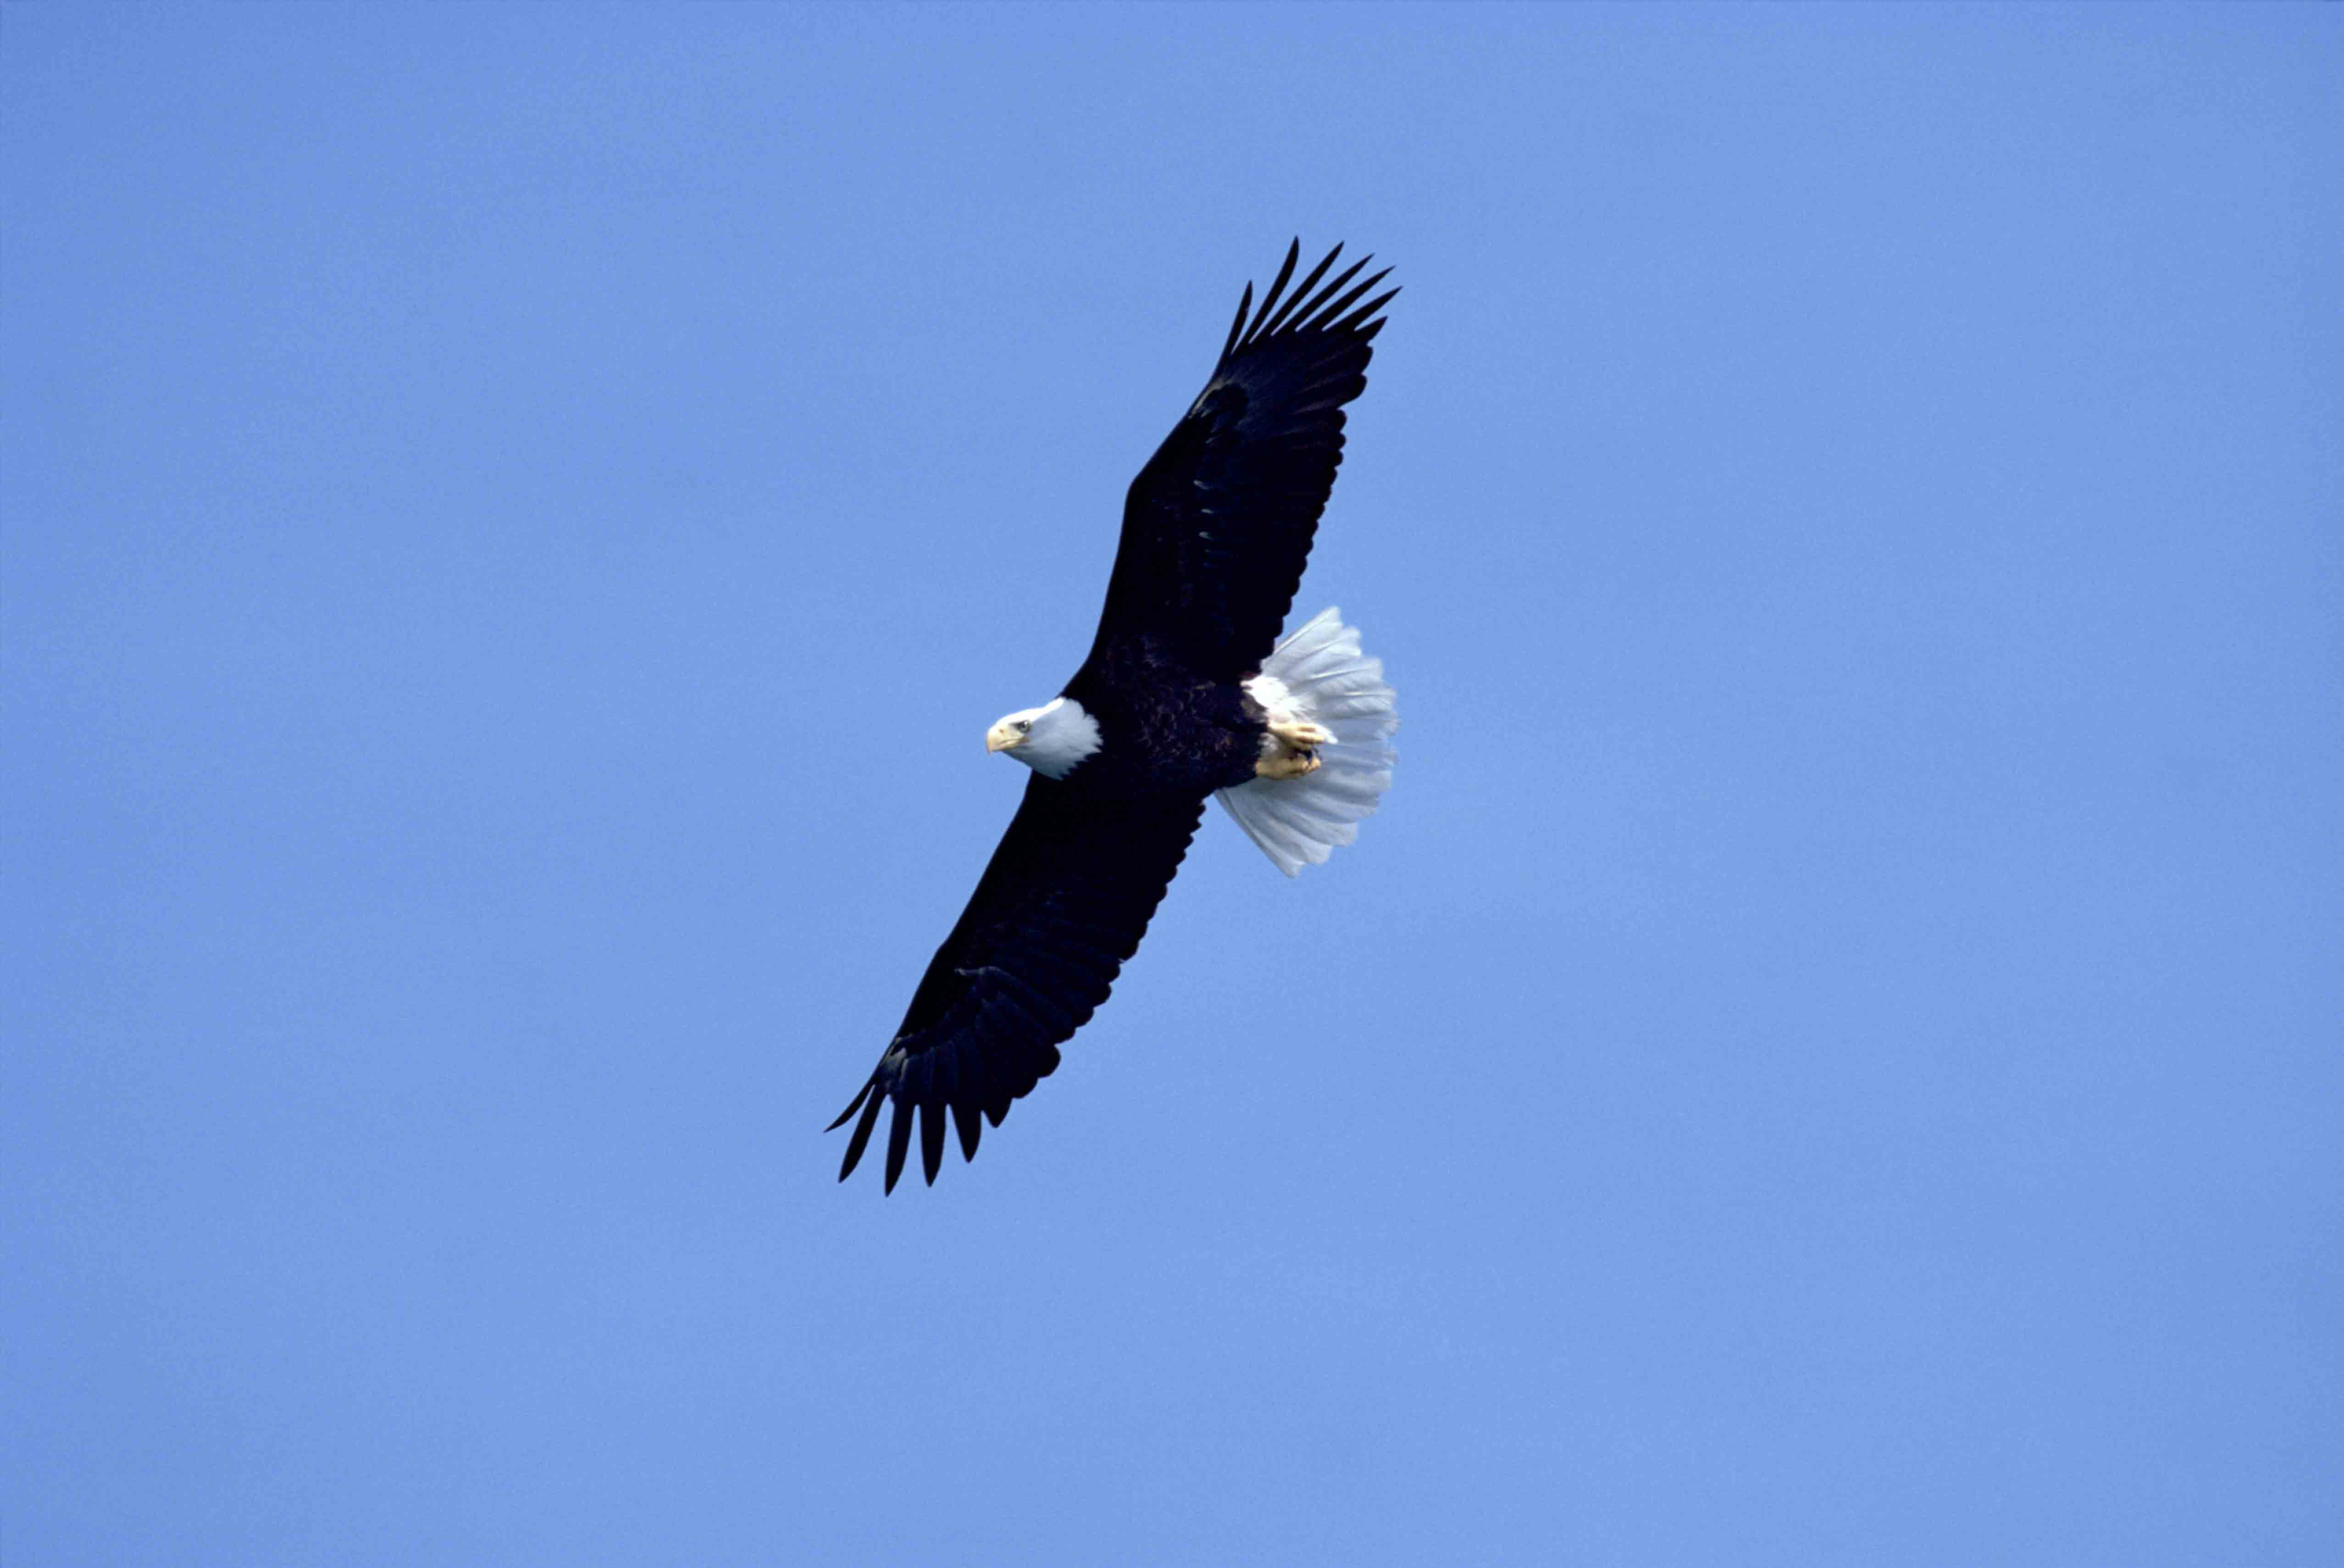 A bald eagle flies against a blue sky